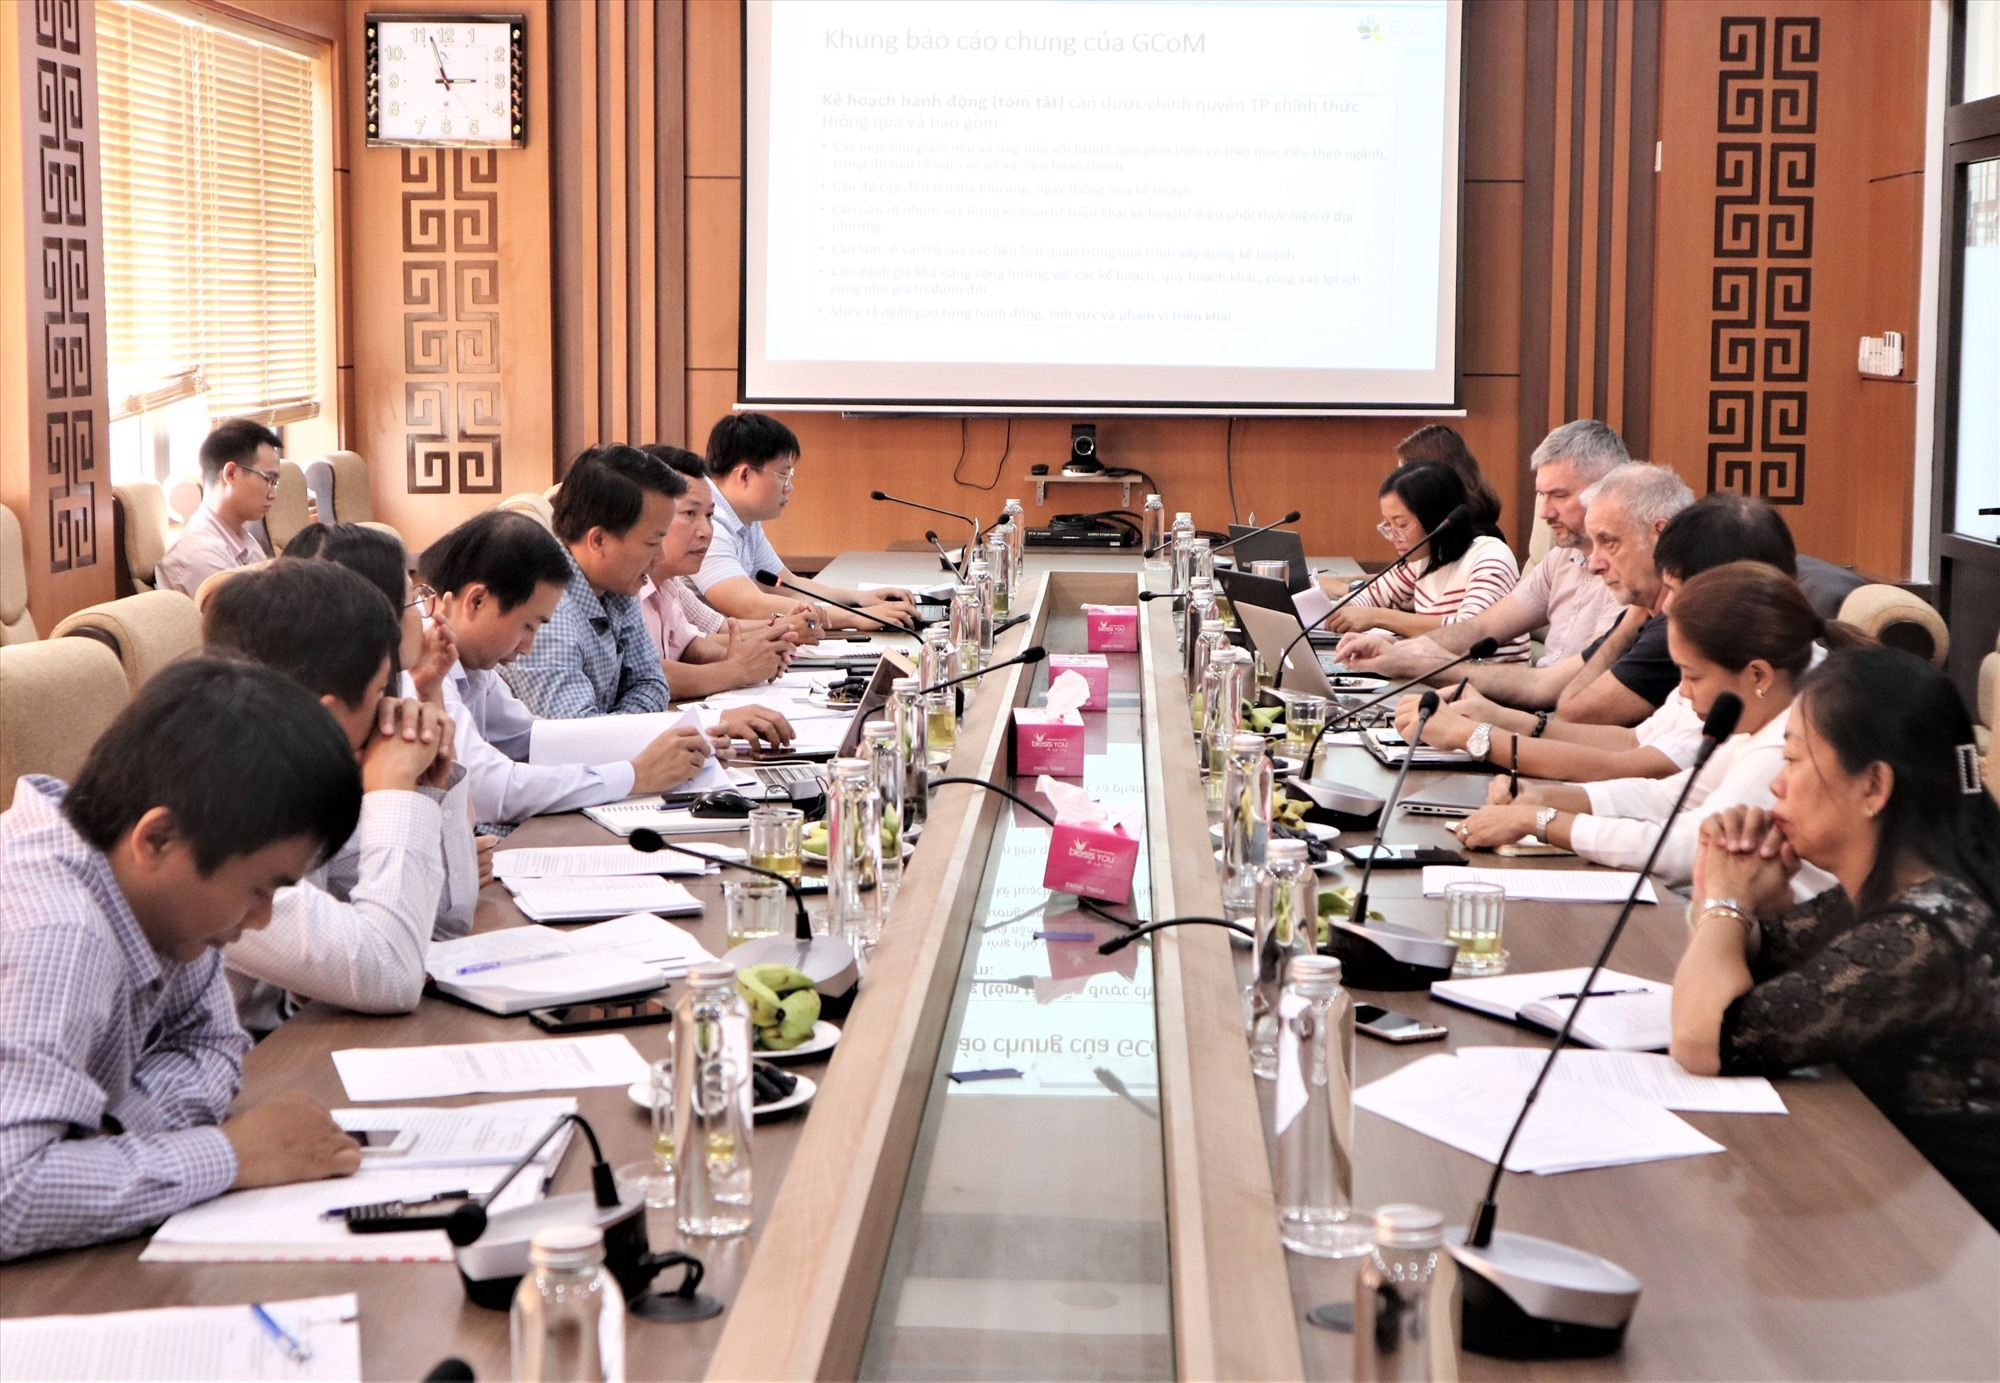 Scene of the meeting between representatives of the UN-Habitat and IUC and Tam Ky city